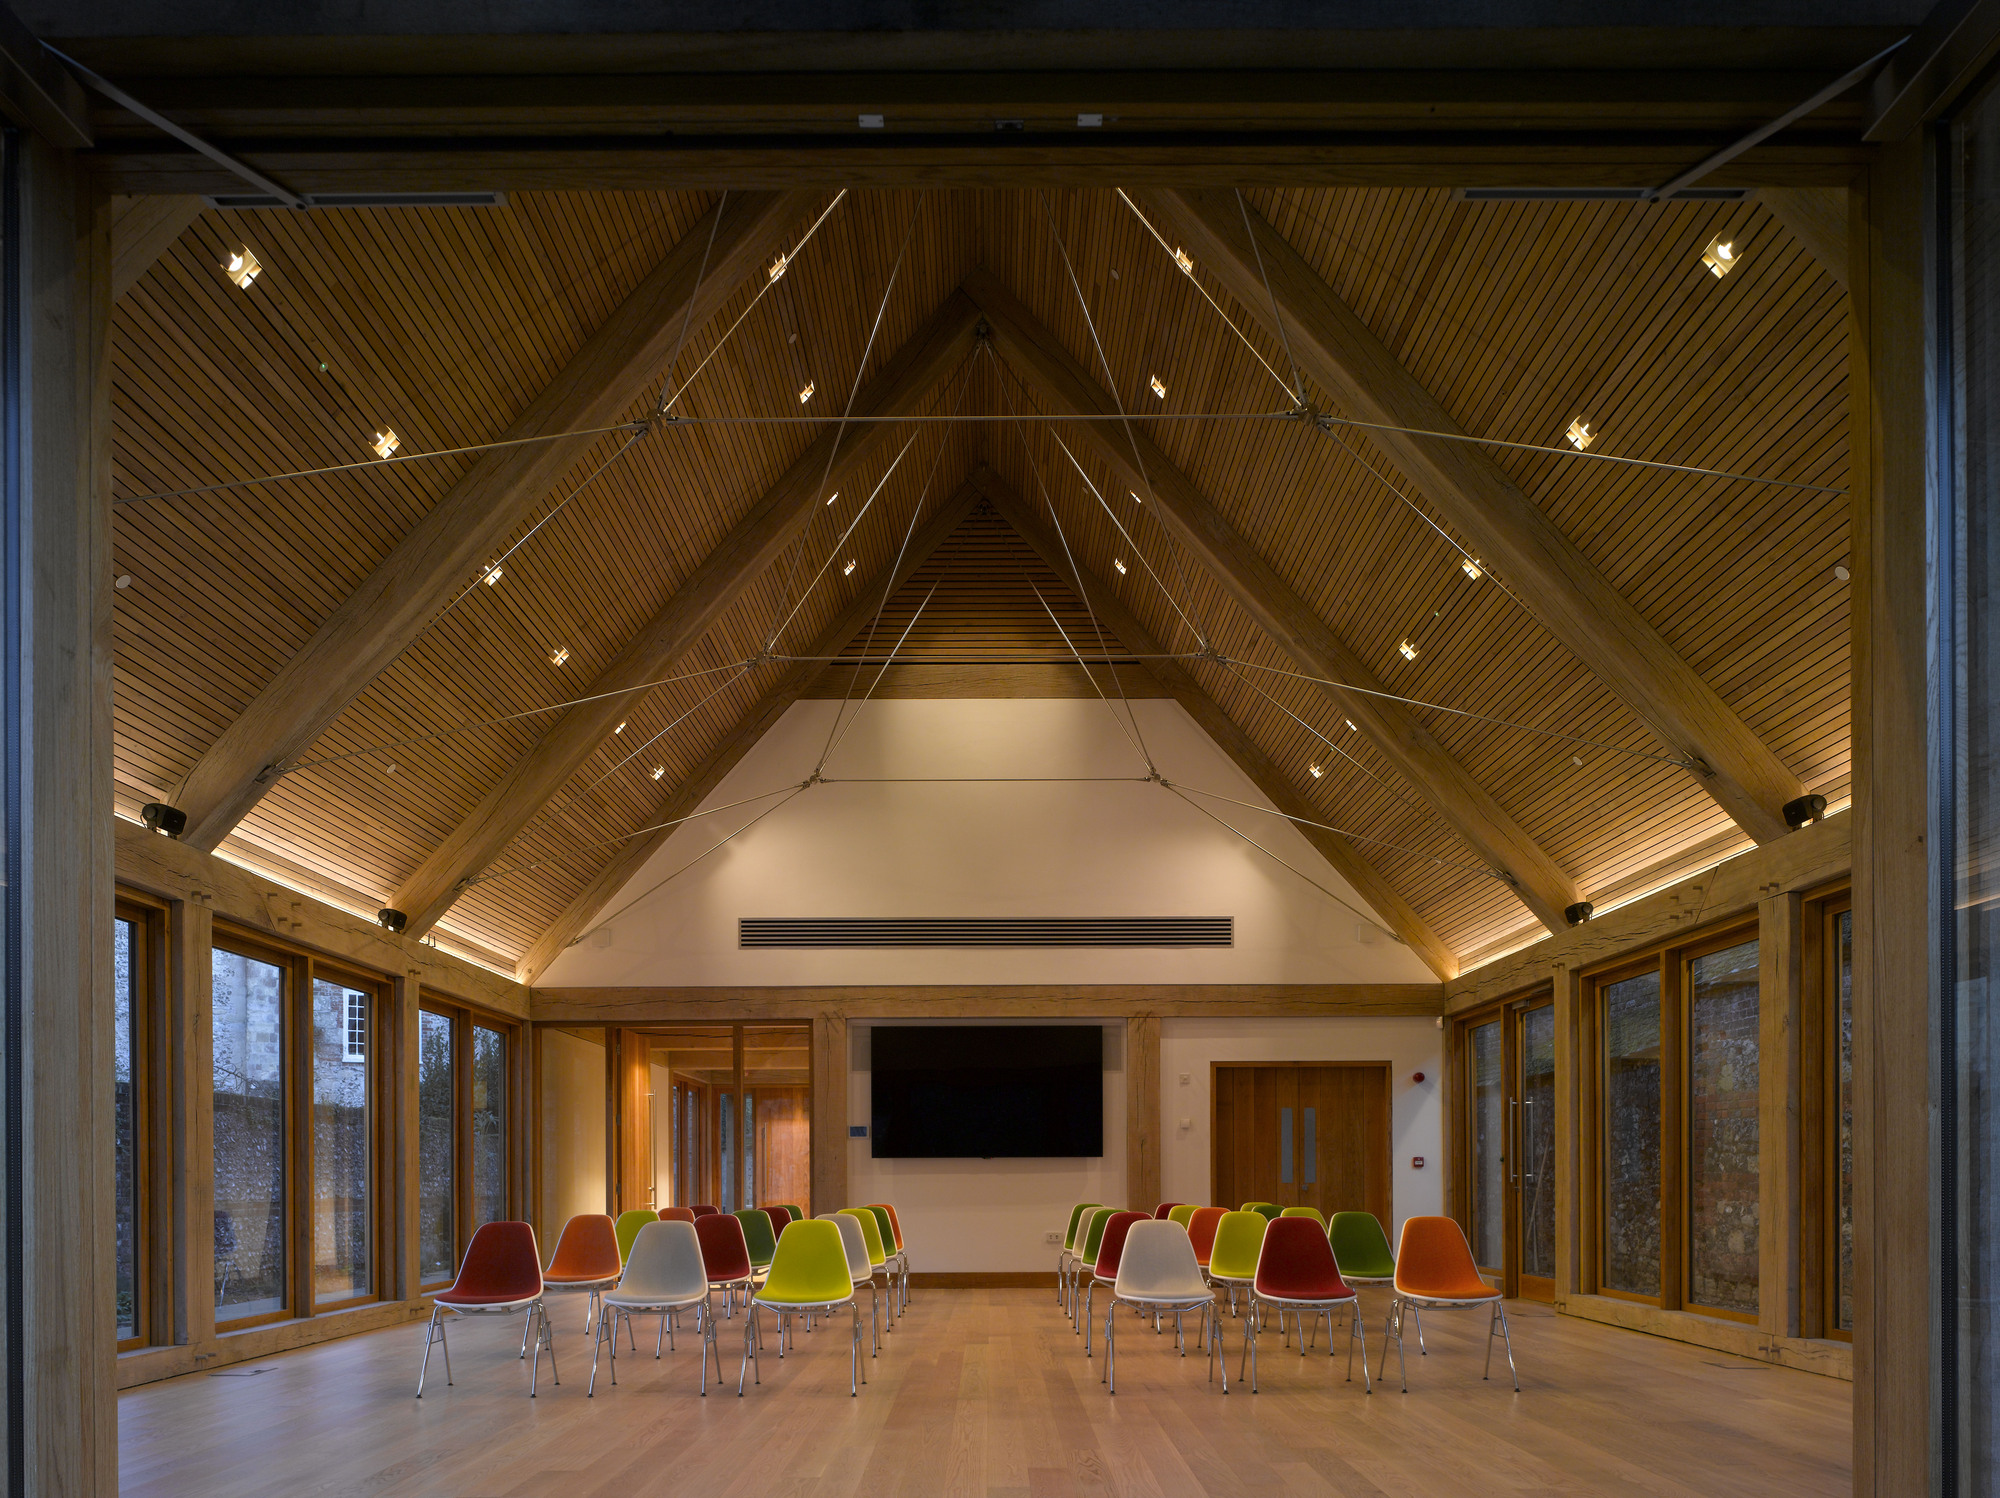 Adam architecture groundbreaking country house in hampshire - Winchester Cathedral Learning Centre Winchester Hampshire County Council Architects Image Nick Kane